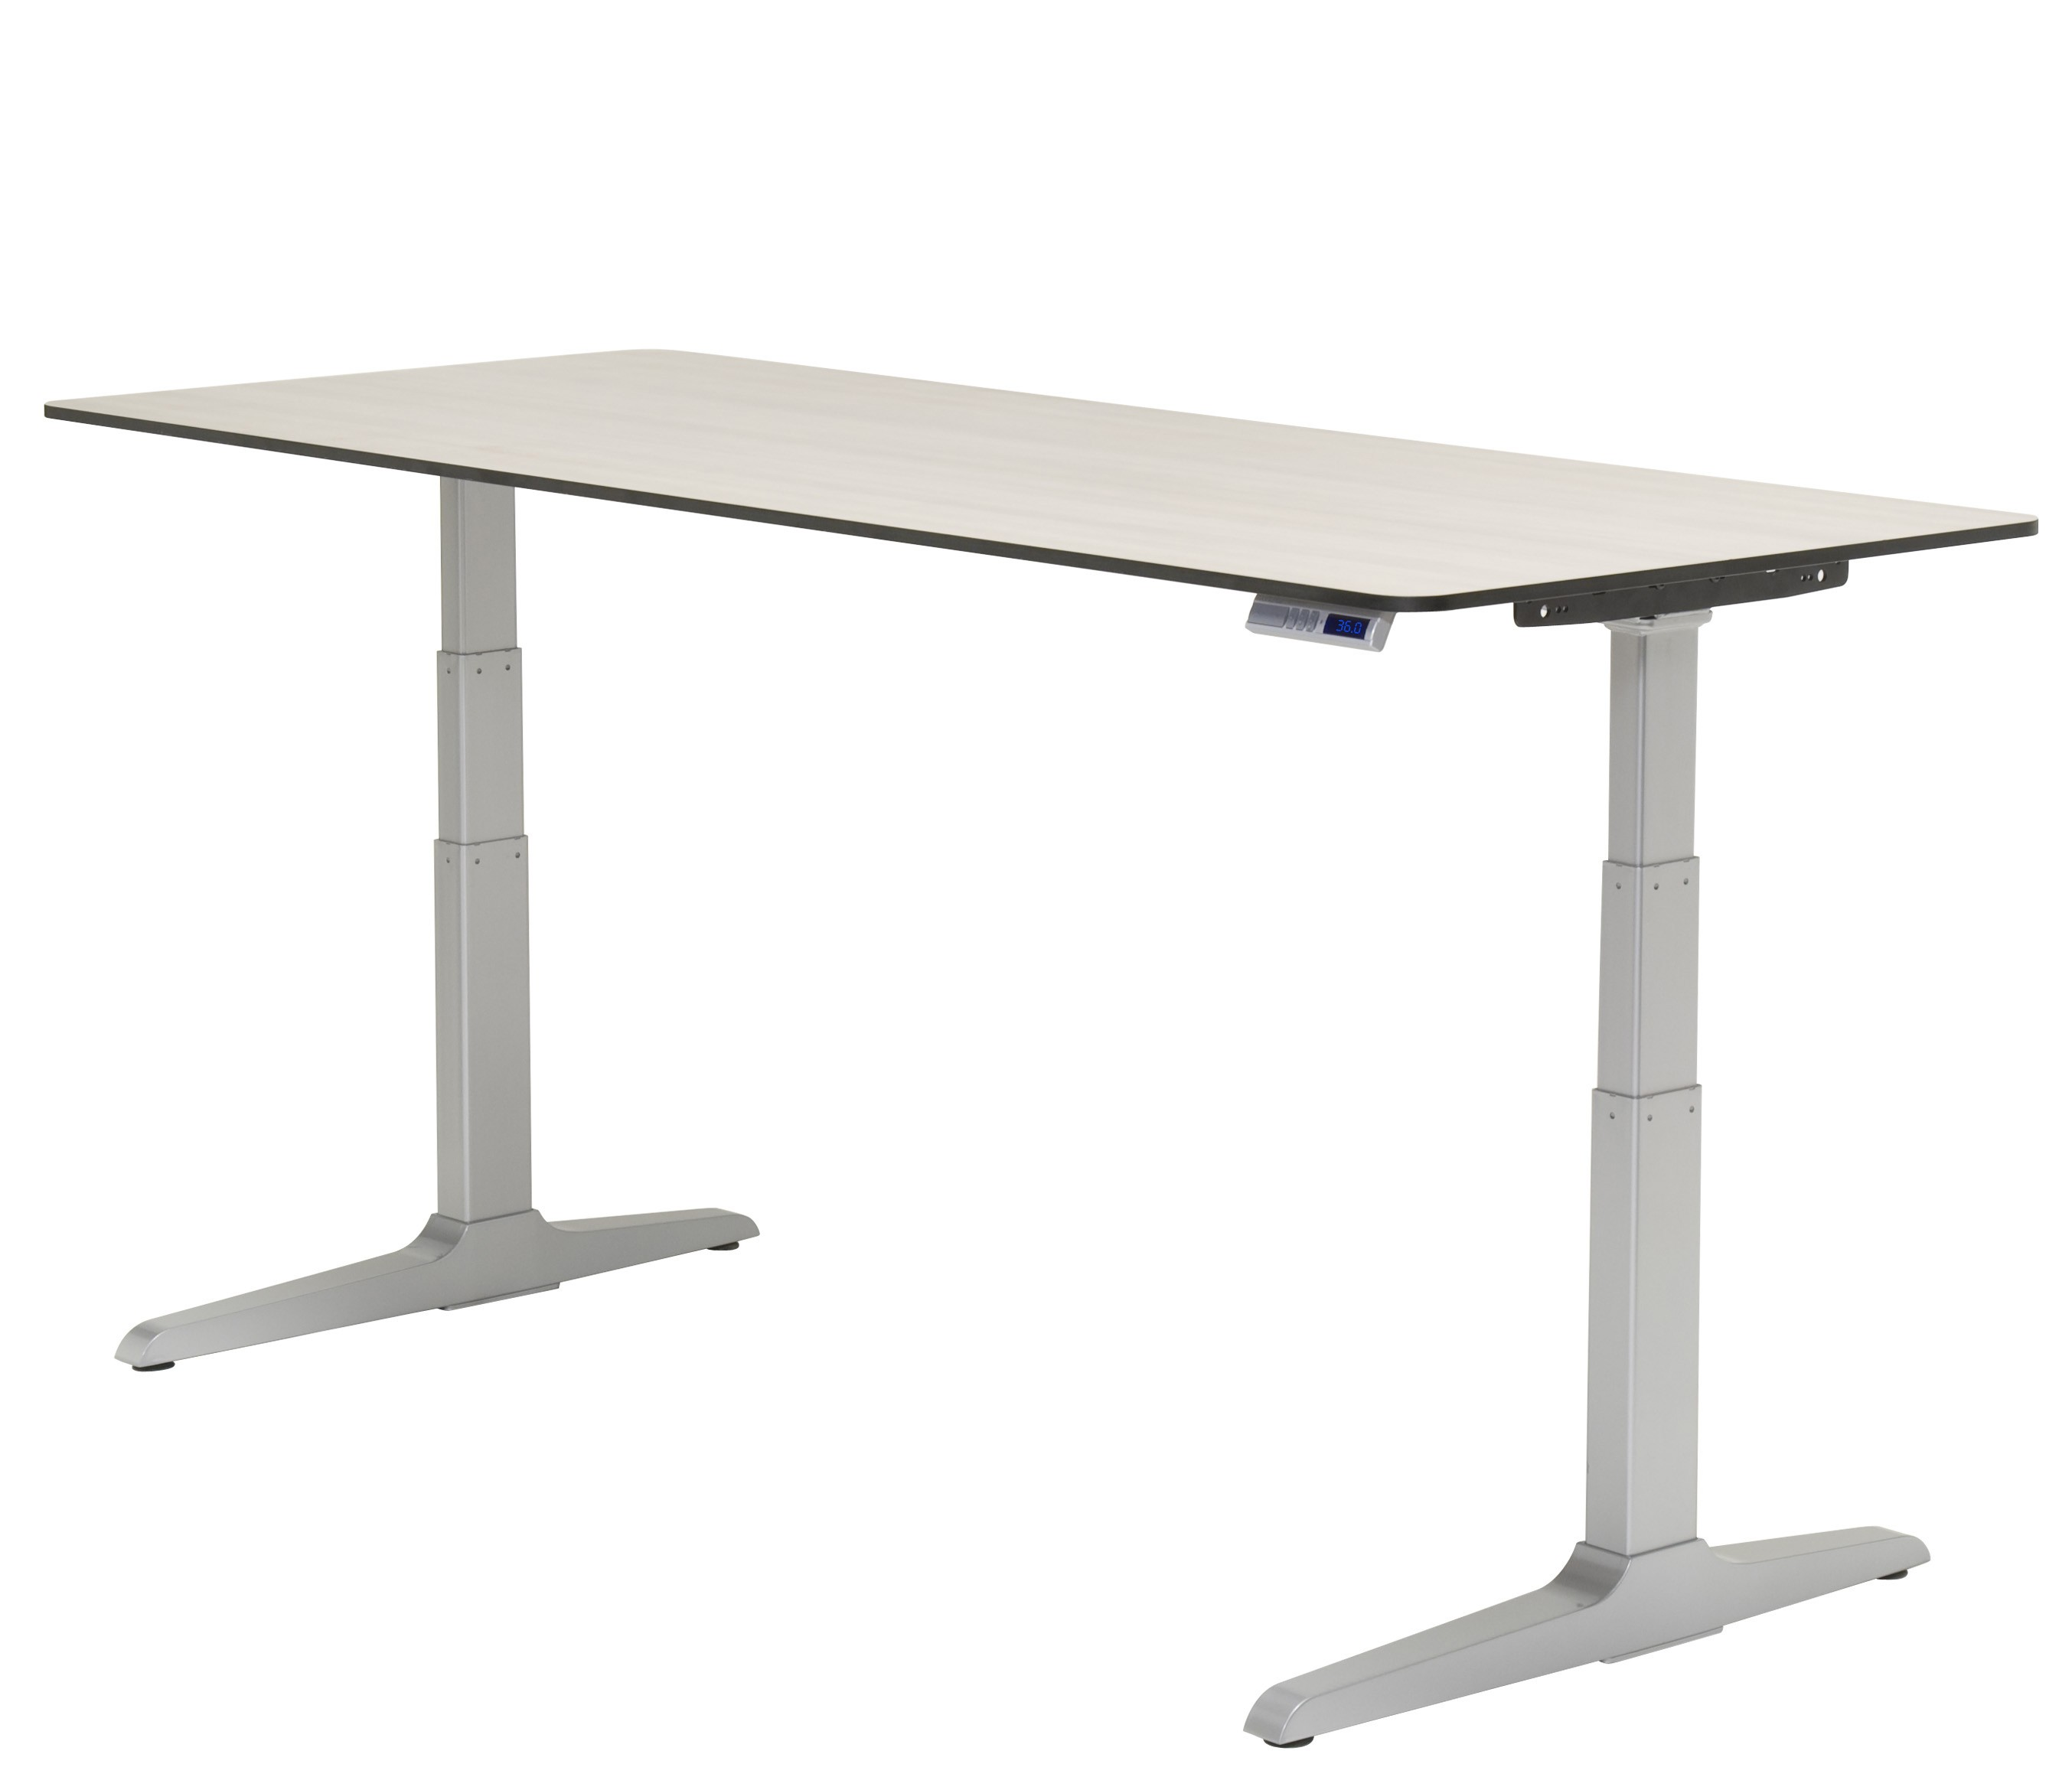 desk quick standing stand desks prop bk tk height and store up crank sit adjustable view to